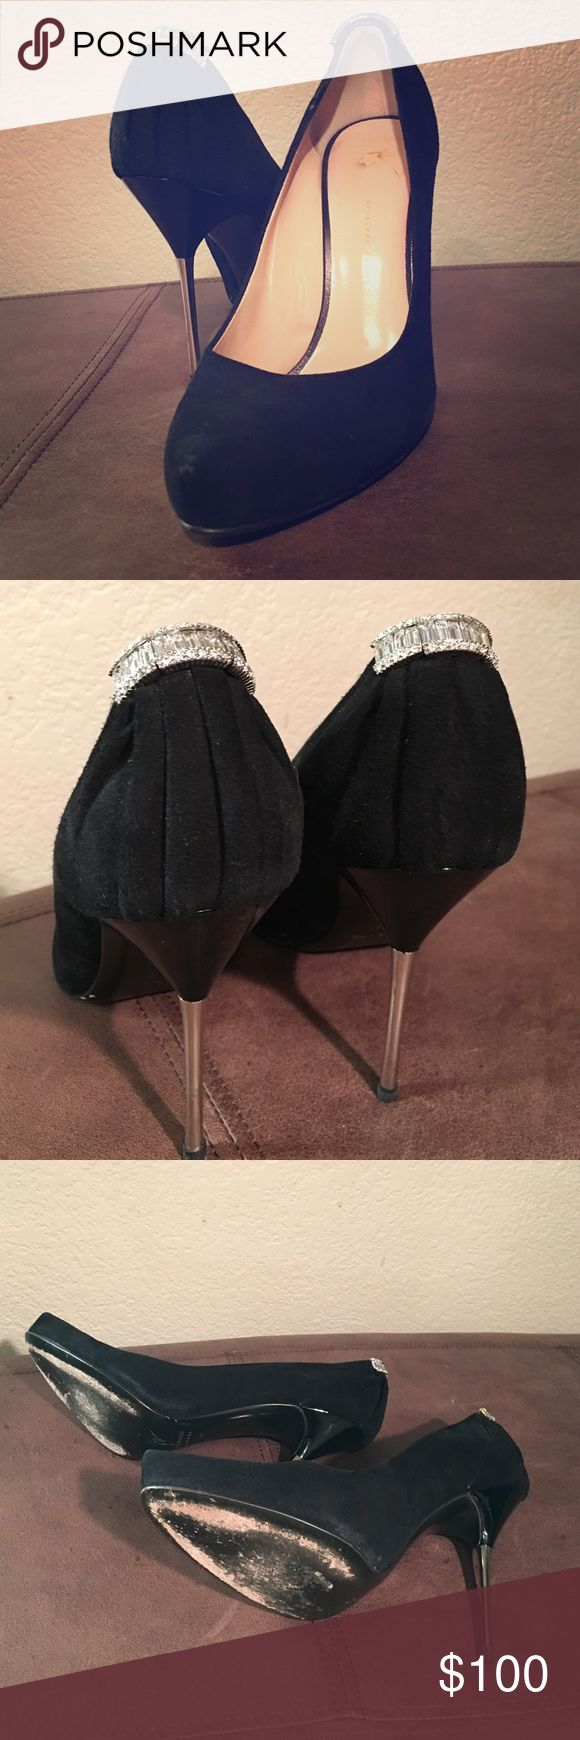 Giuseppe Zanotti Design Size 10 Giuseppe Zanotti Design Size 10 they are somewhere on the bottom heels but not anything major. These are used bed would look great with a certain outfit in great shape. Giuseppe Zanotti Shoes Heels